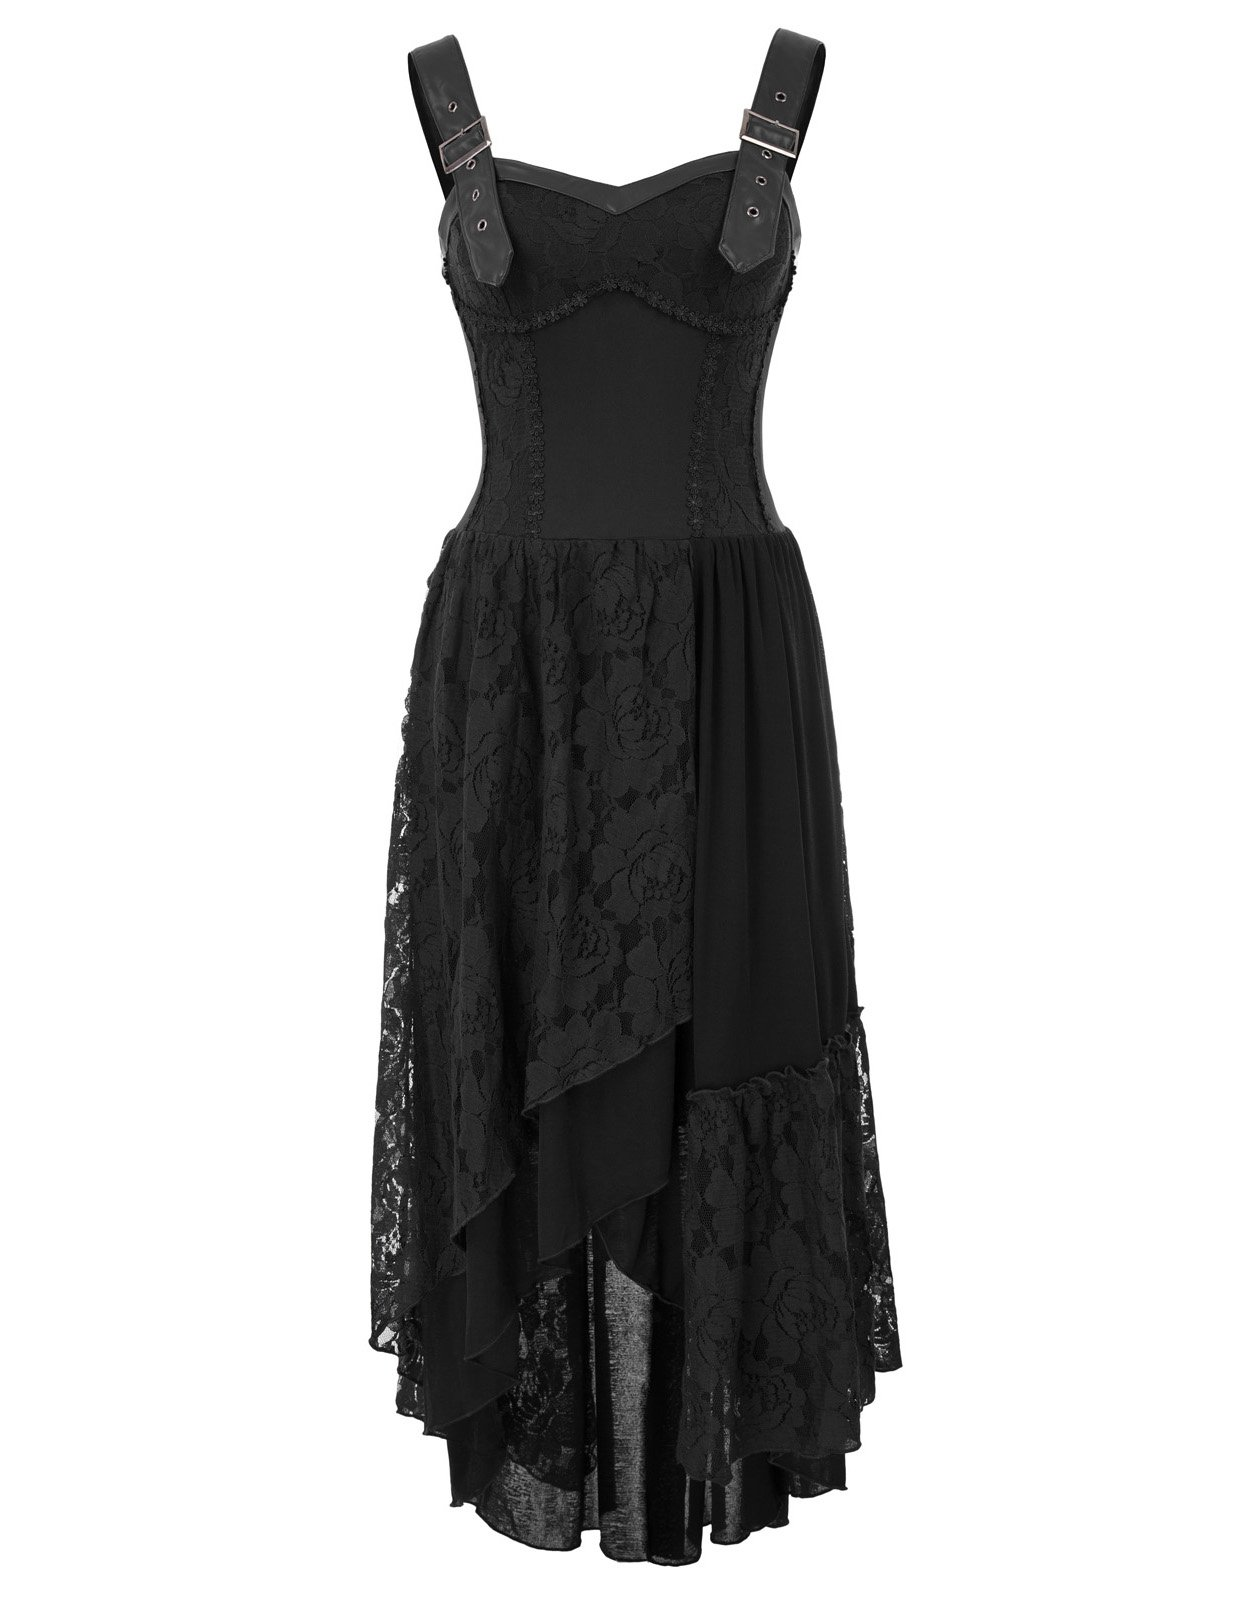 Women Steampunk Gothic Victorian Long Dress Sleeveless Irregular Lace Dress 3